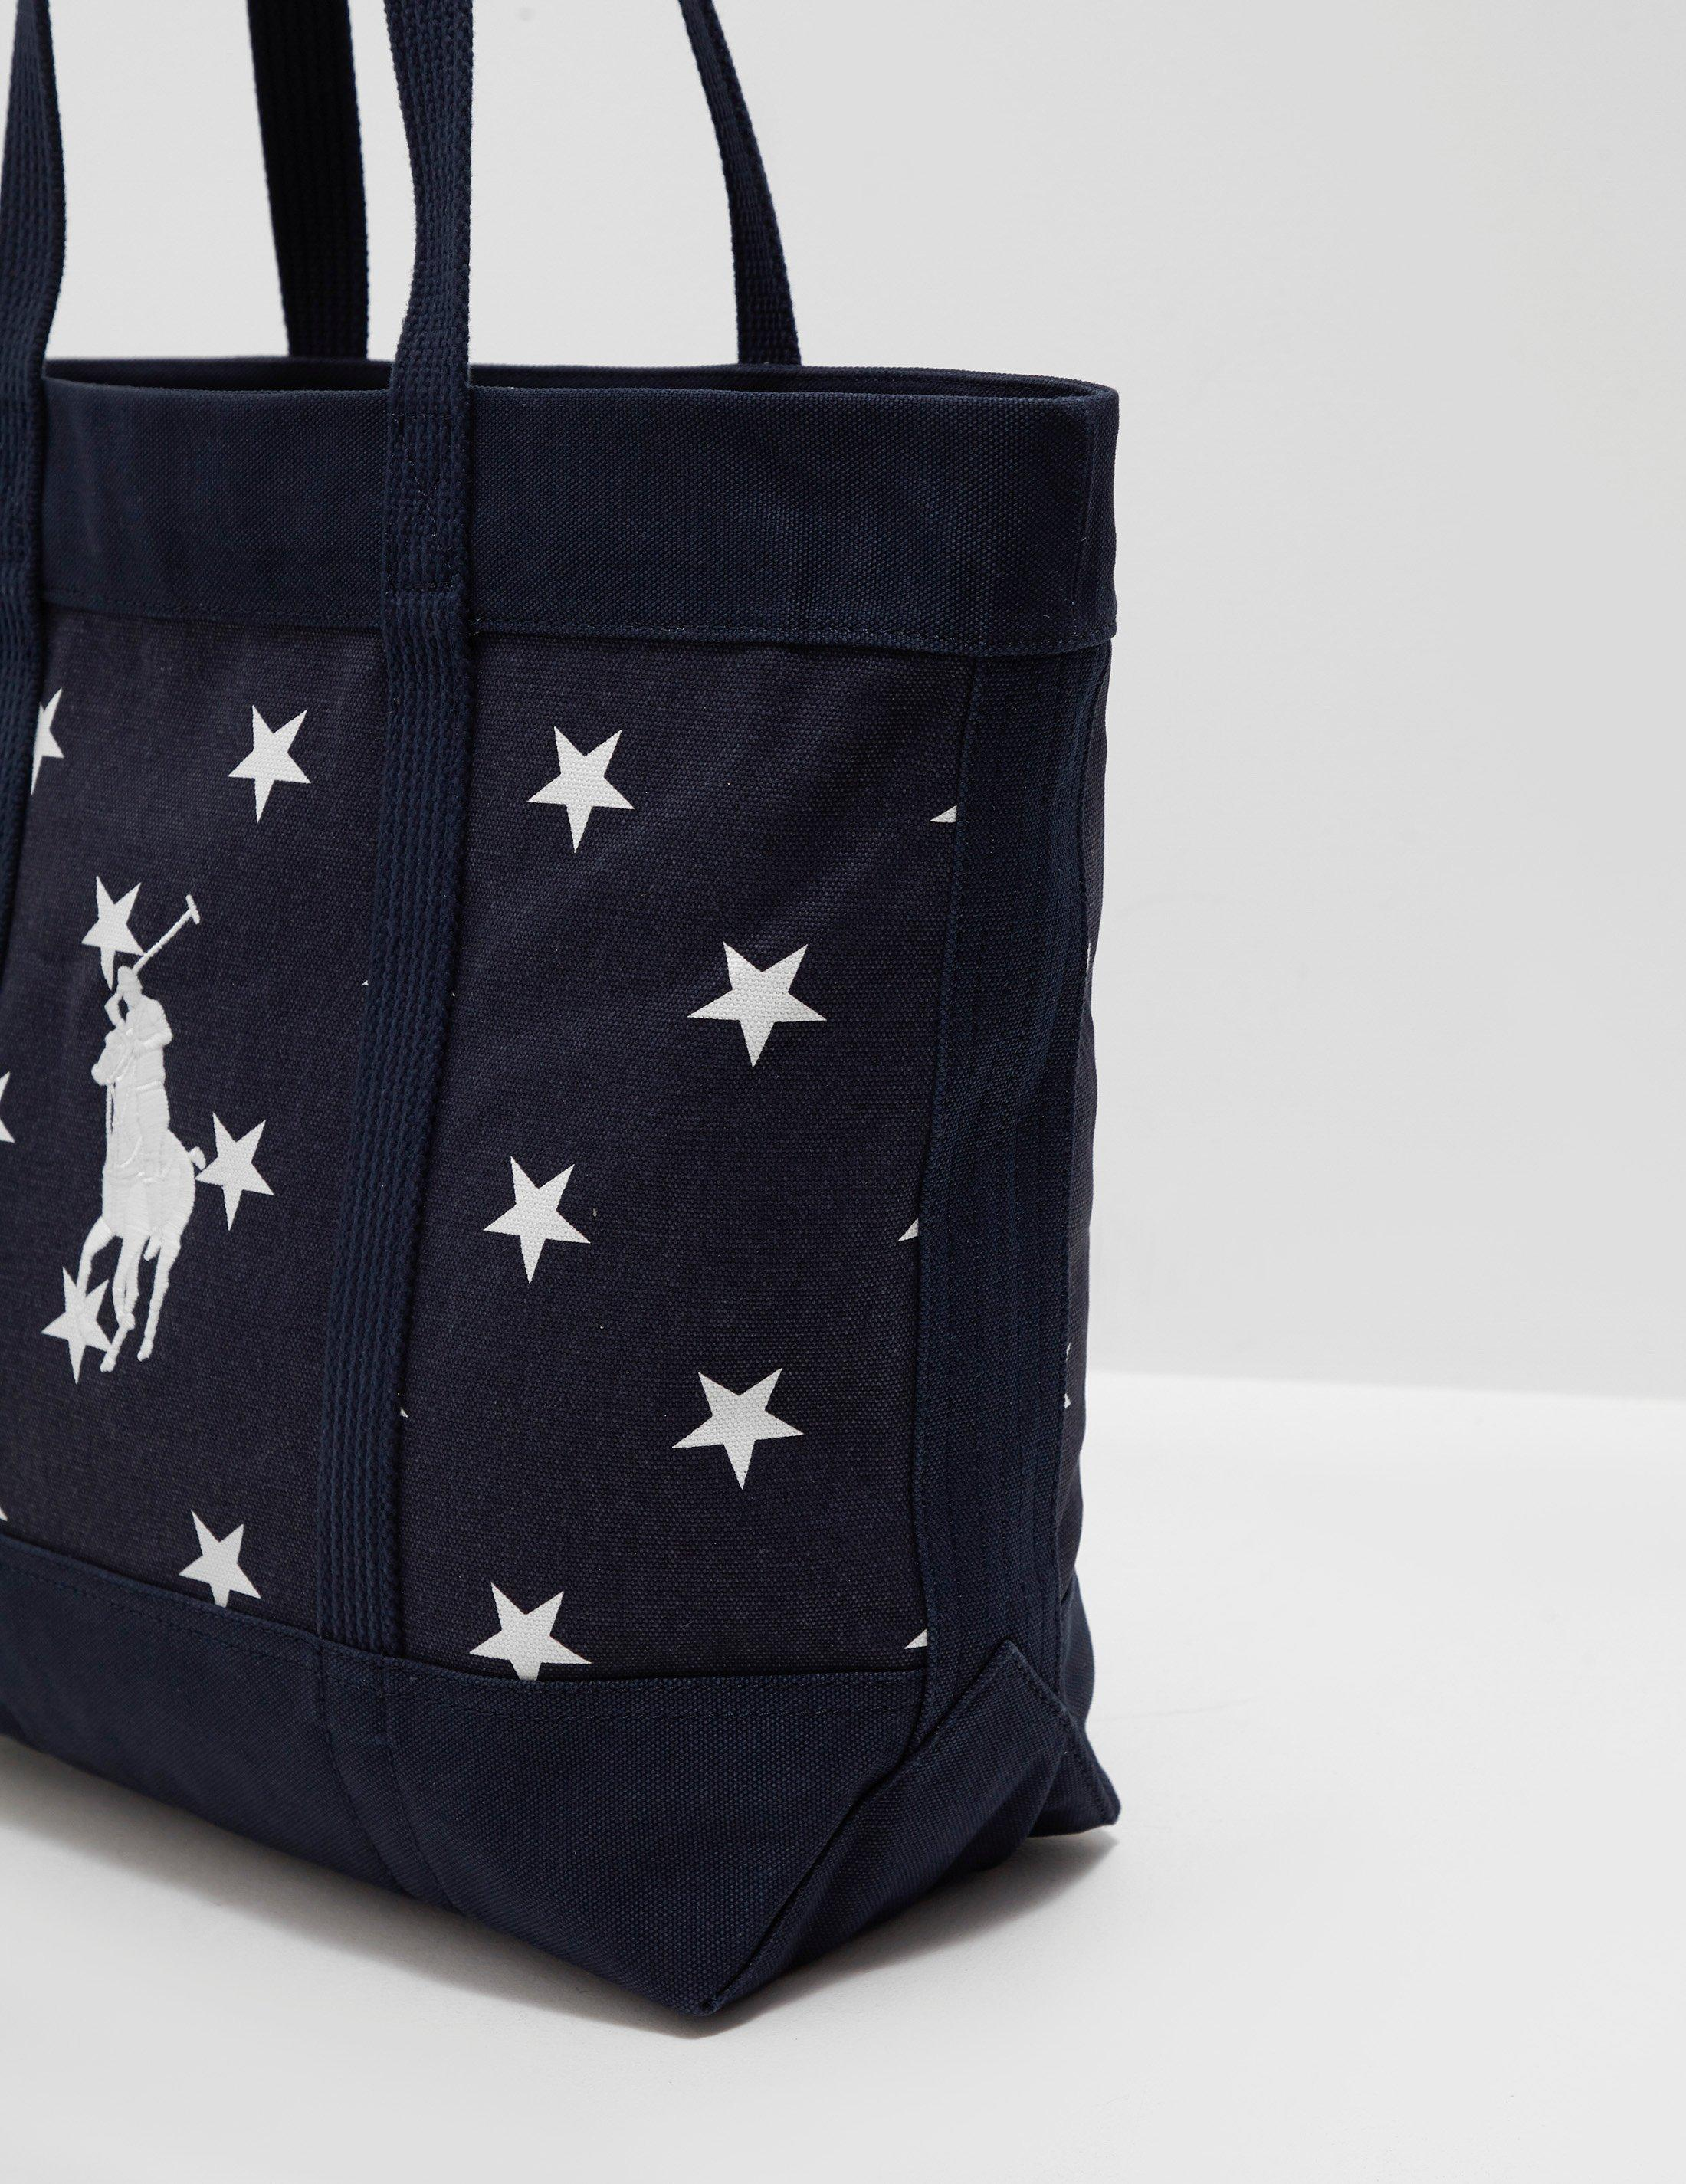 Polo Ralph Lauren Mens Stars Tote Bag - Online Exclusive Navy Blue ... 38bedc9eb8c95